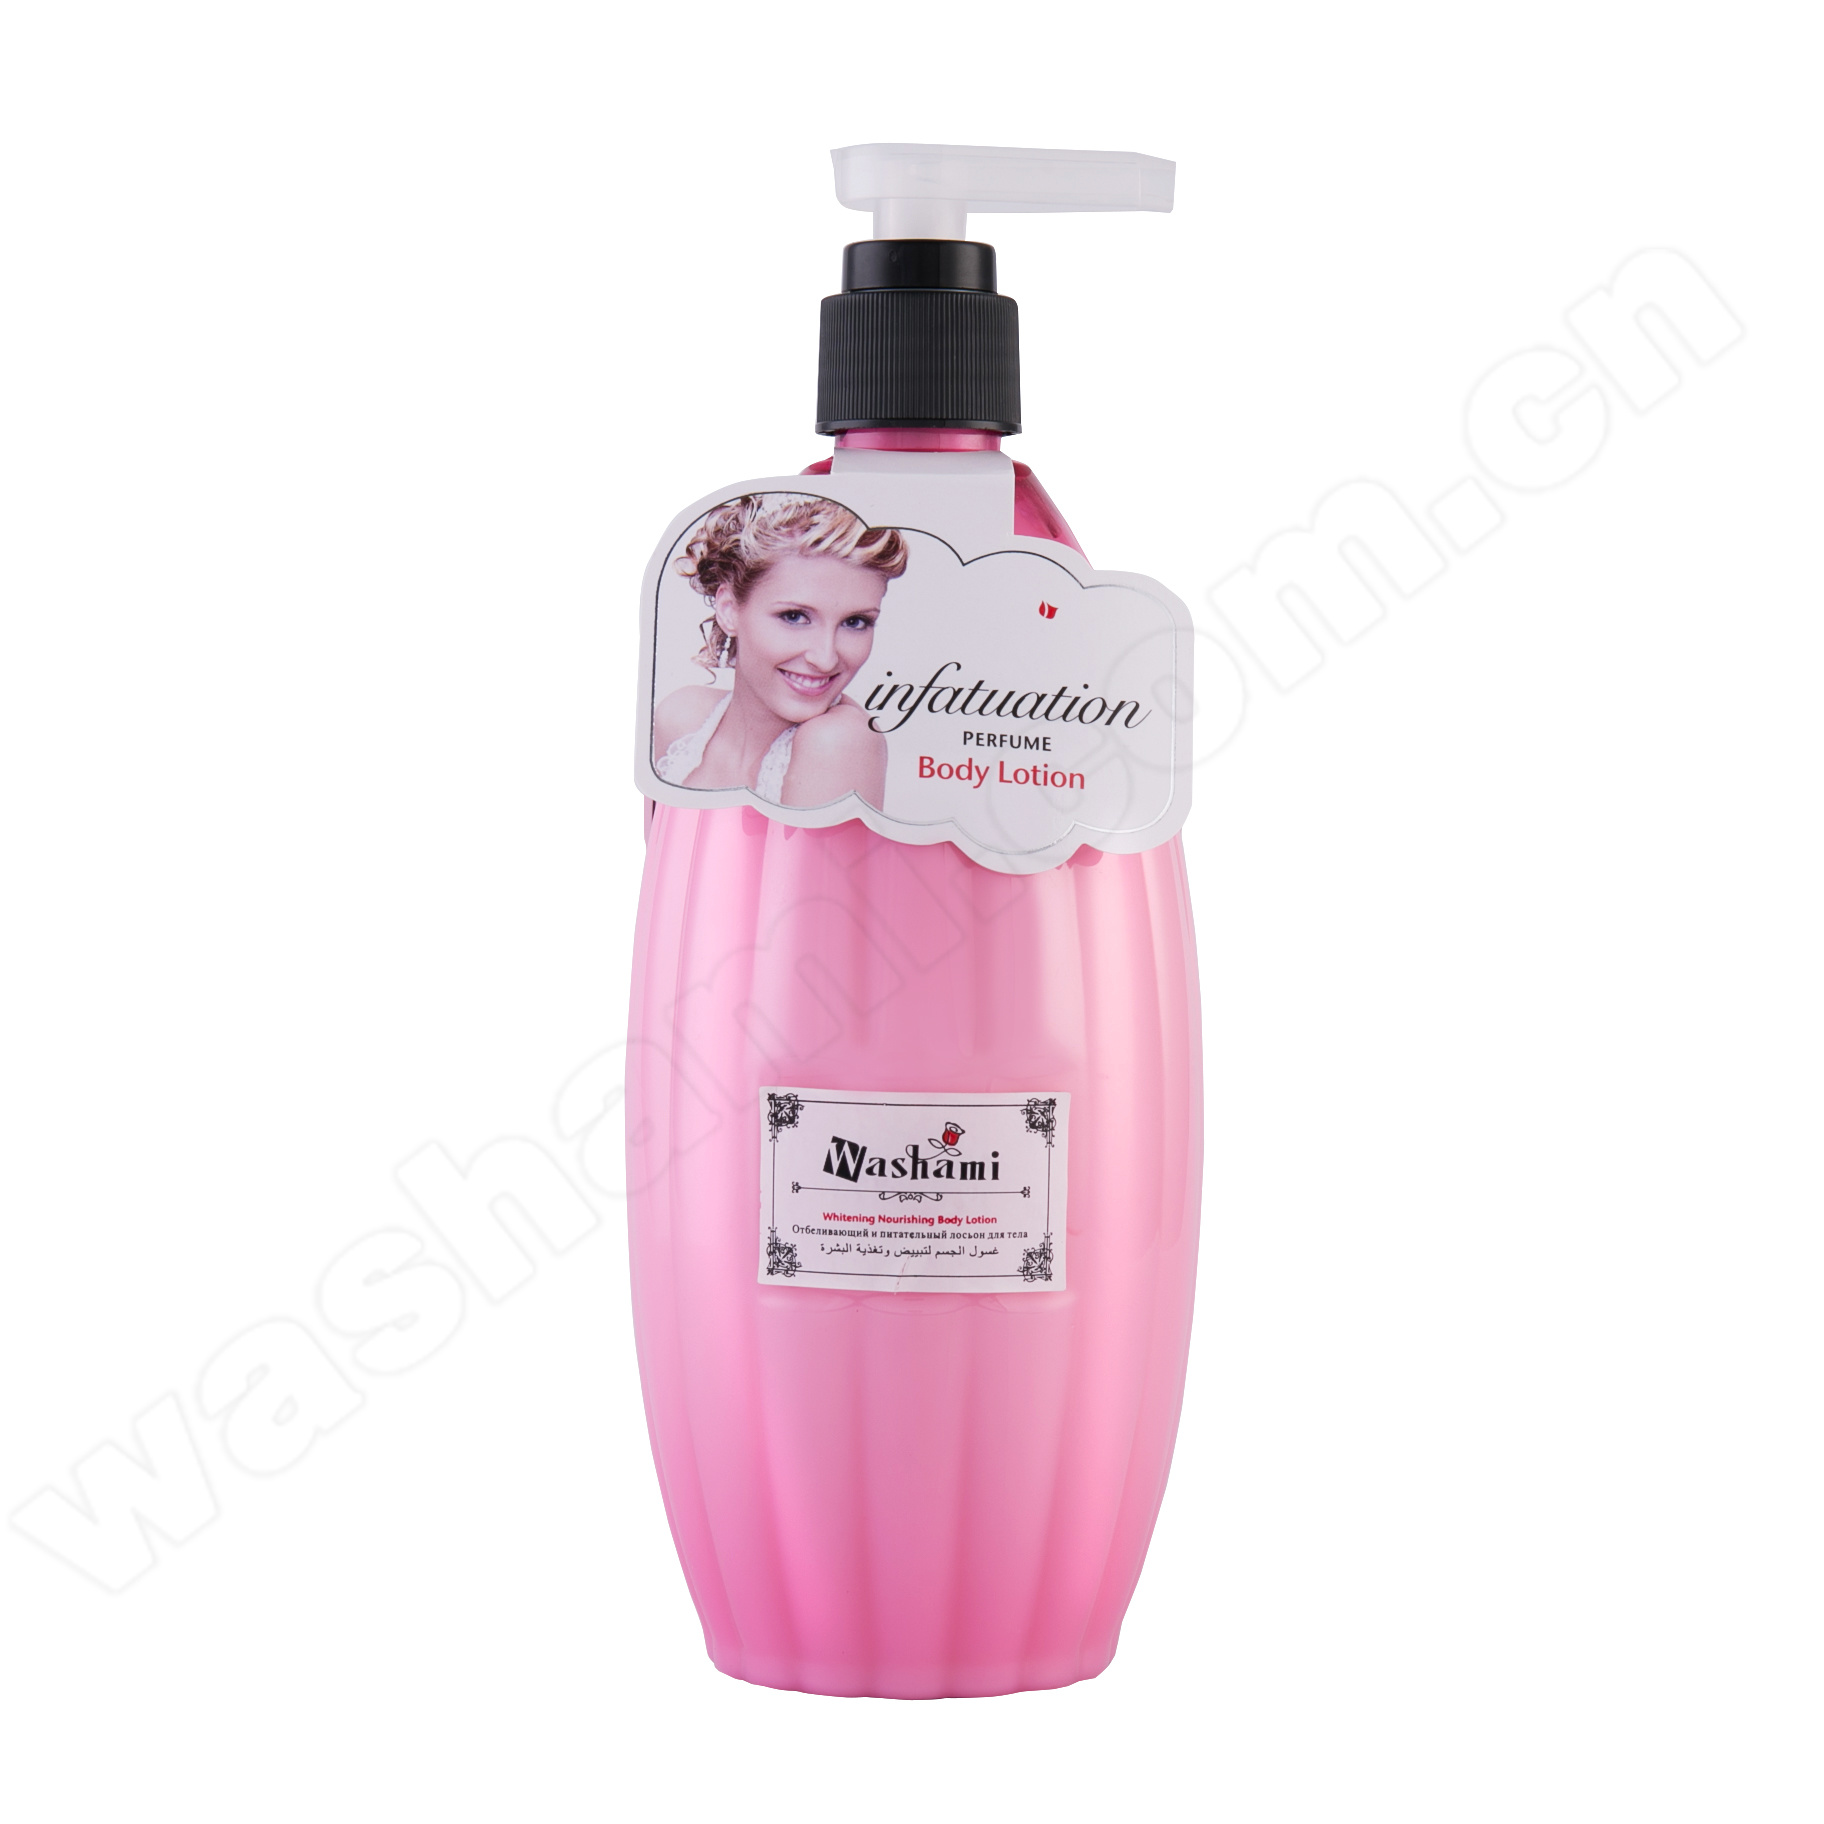 New Formula Washami Nourishing Perfume Skin Whitening Body Lotion